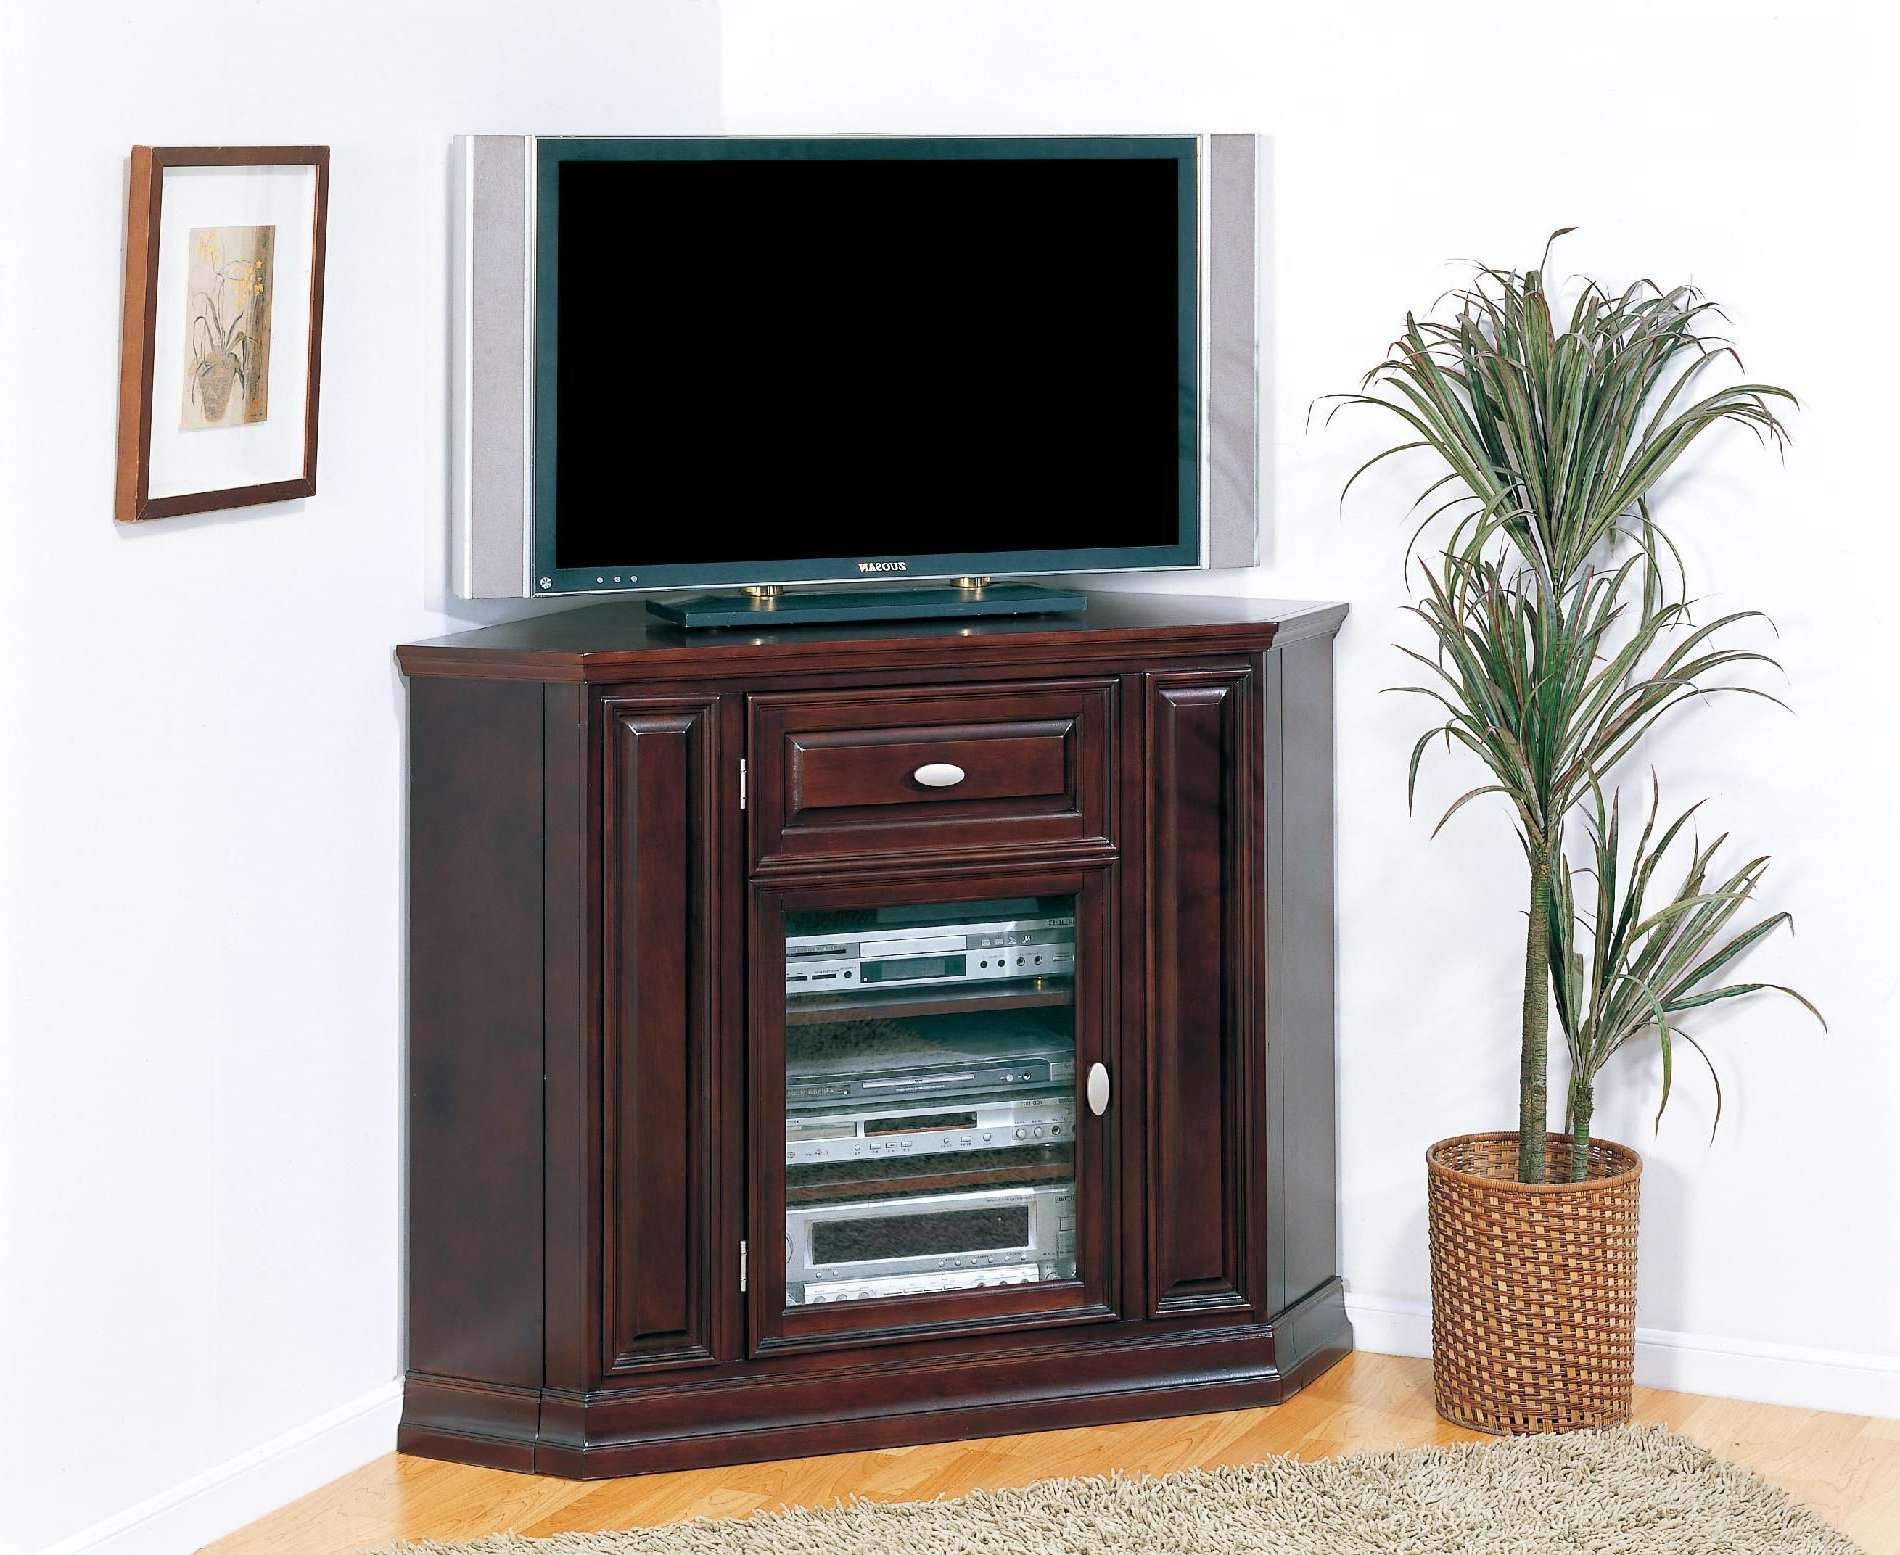 Tall Corner Tv Cabinet With Glass And Wood Doors Plus Drawer Of With Corner Tv Stands With Drawers (View 12 of 15)